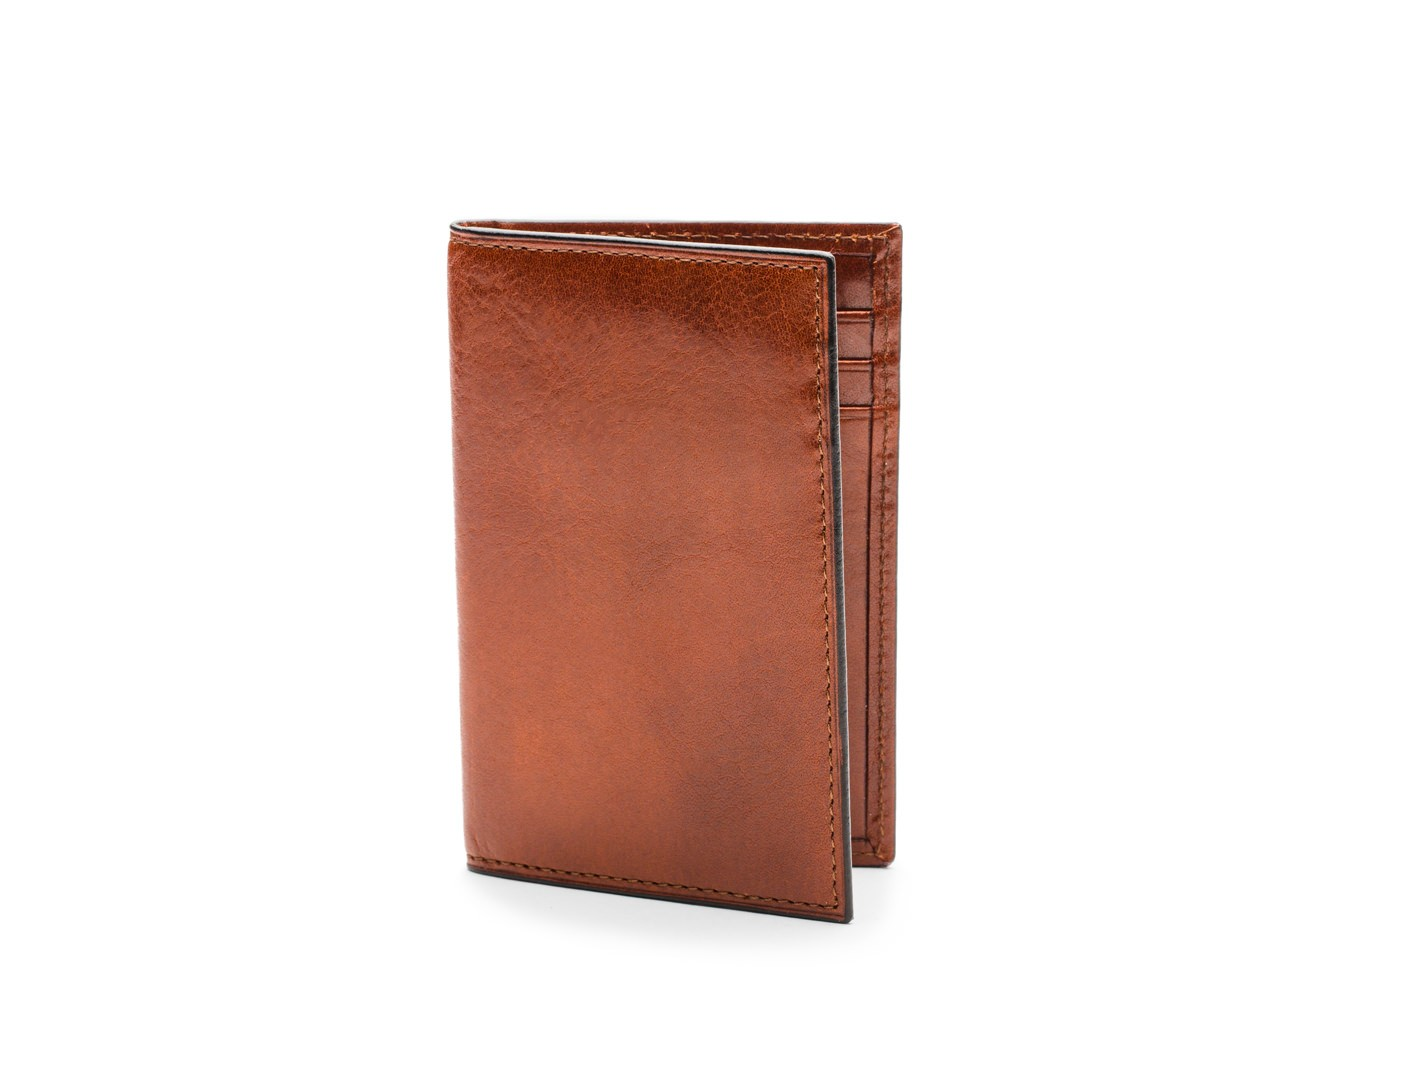 8 Pocket Credit Card Case